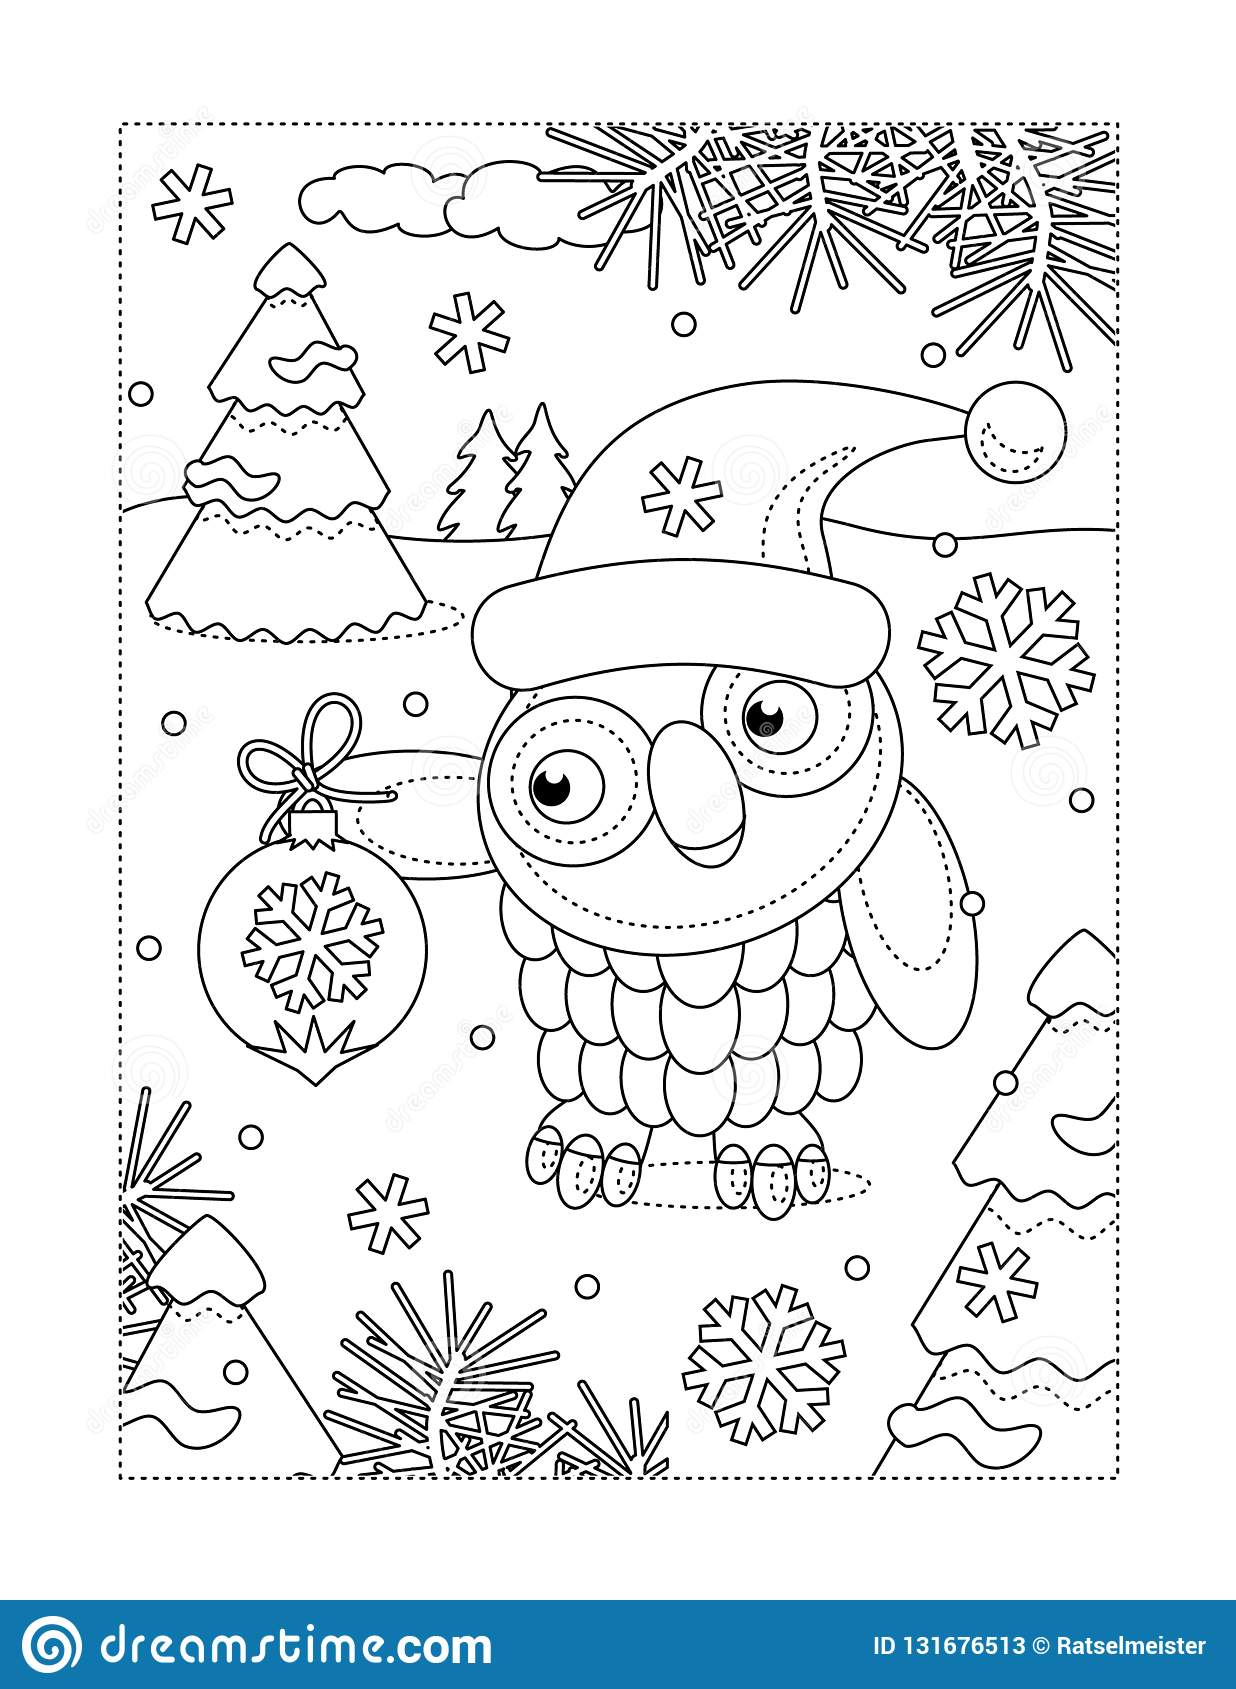 Winter And Christmas Coloring Pages (With images) | Christmas ... | 1689x1236